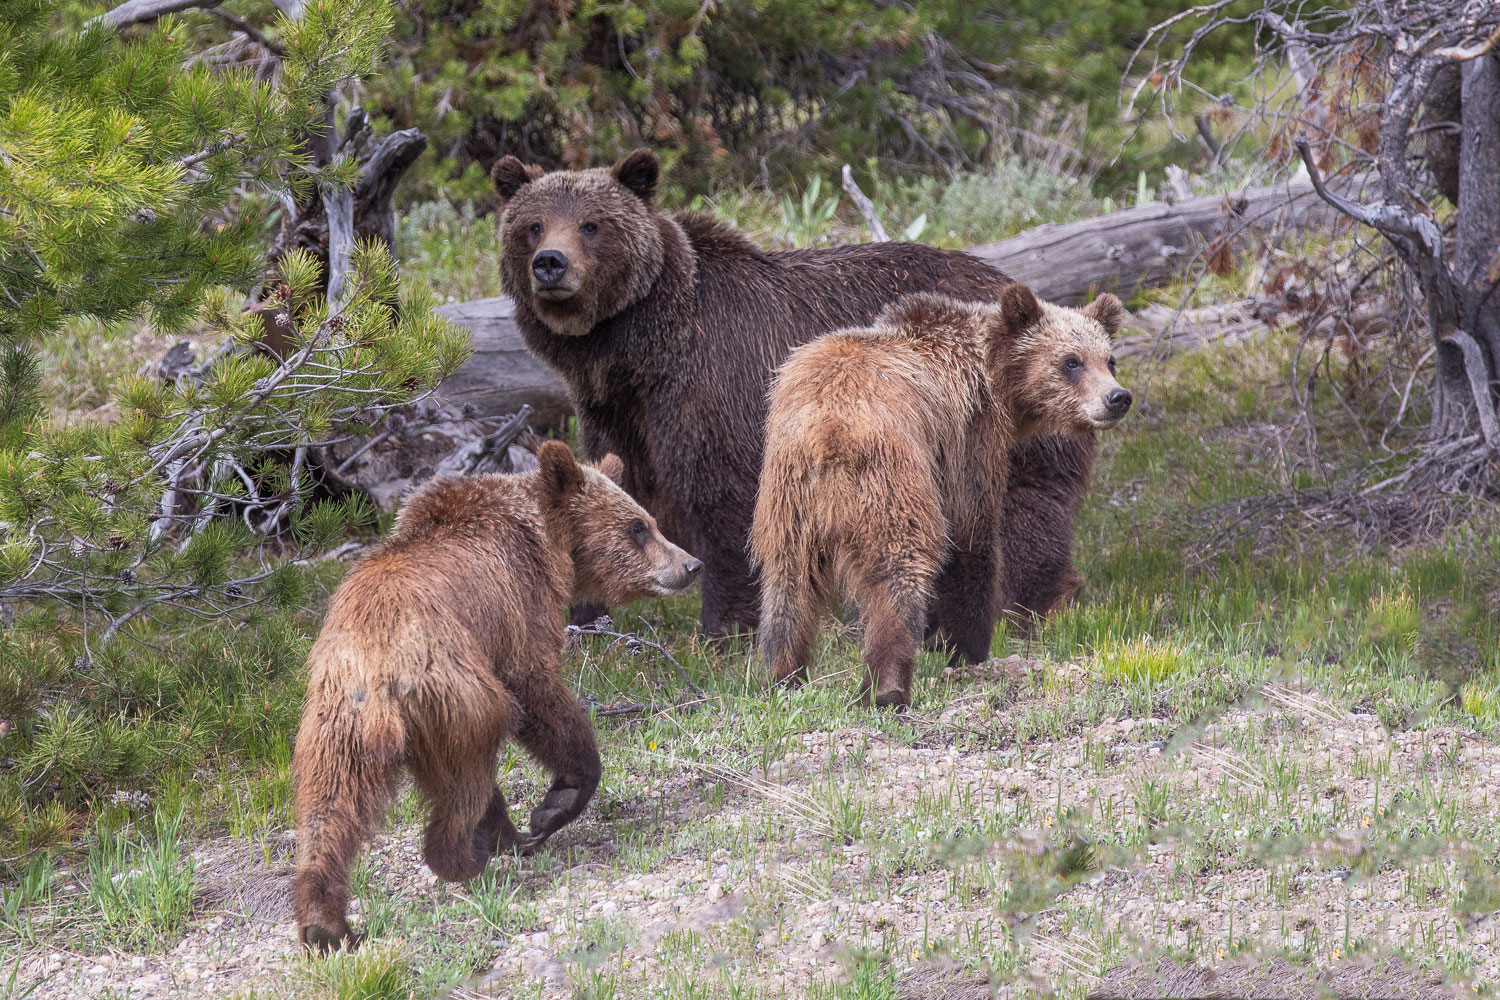 399, grizzly, bear, cub, , spring, grand teton, photo, image, , 2018, Tetons, photo